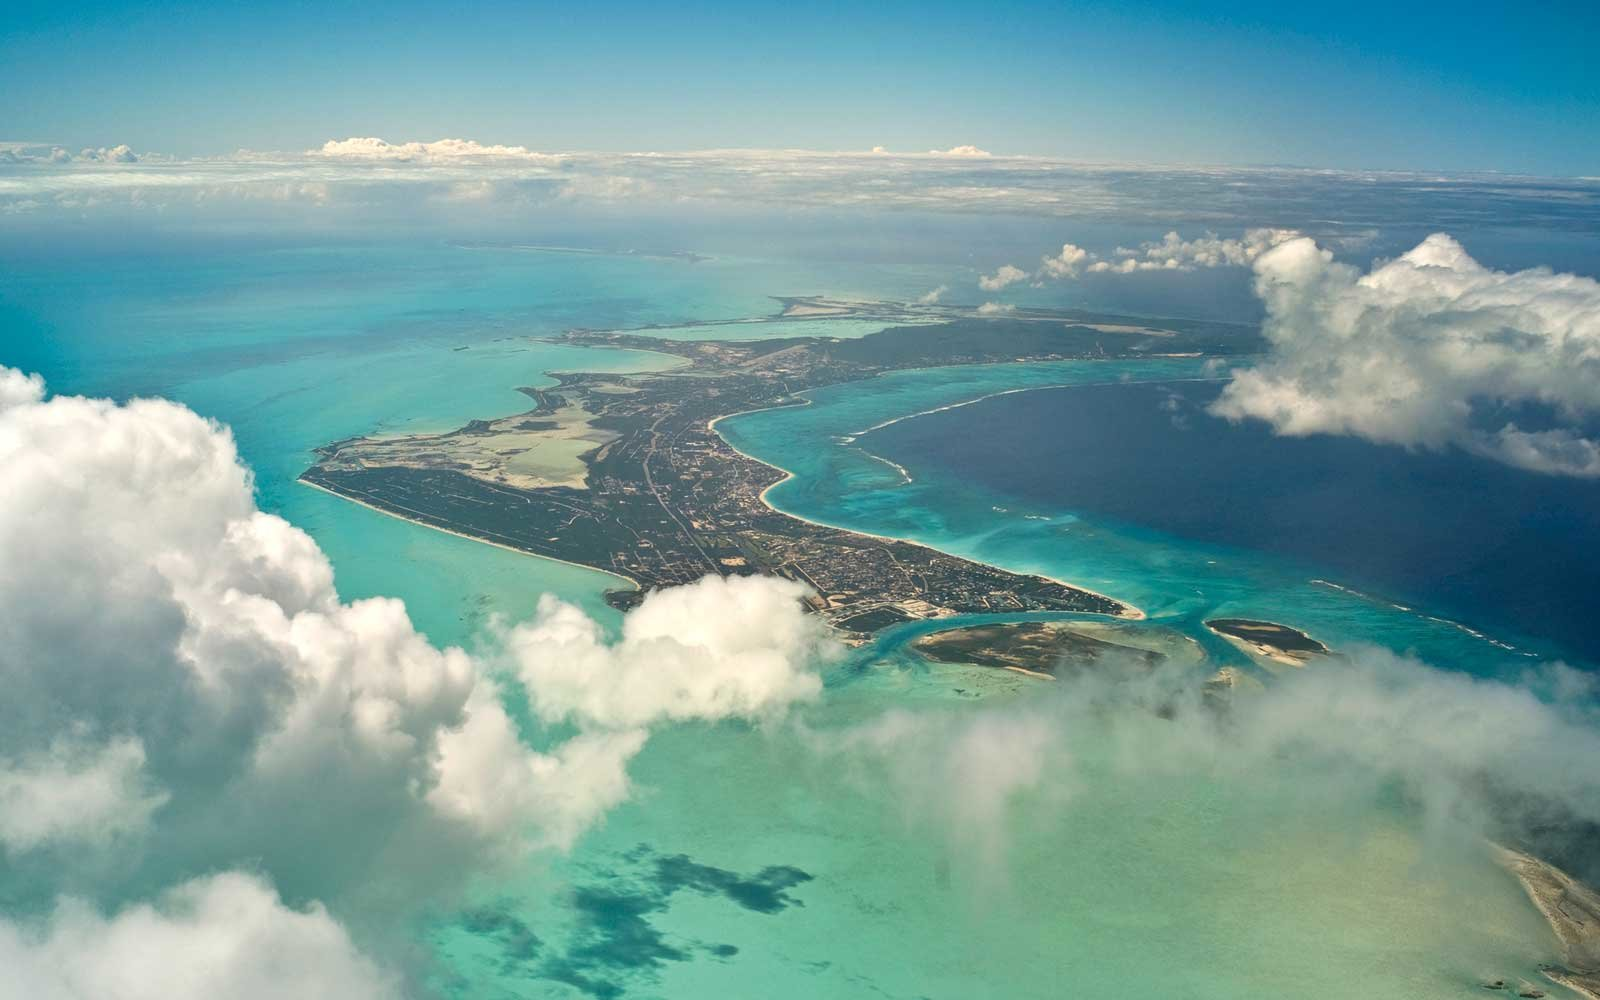 Southwest Airlines New Flights To Turks And Caicos Start